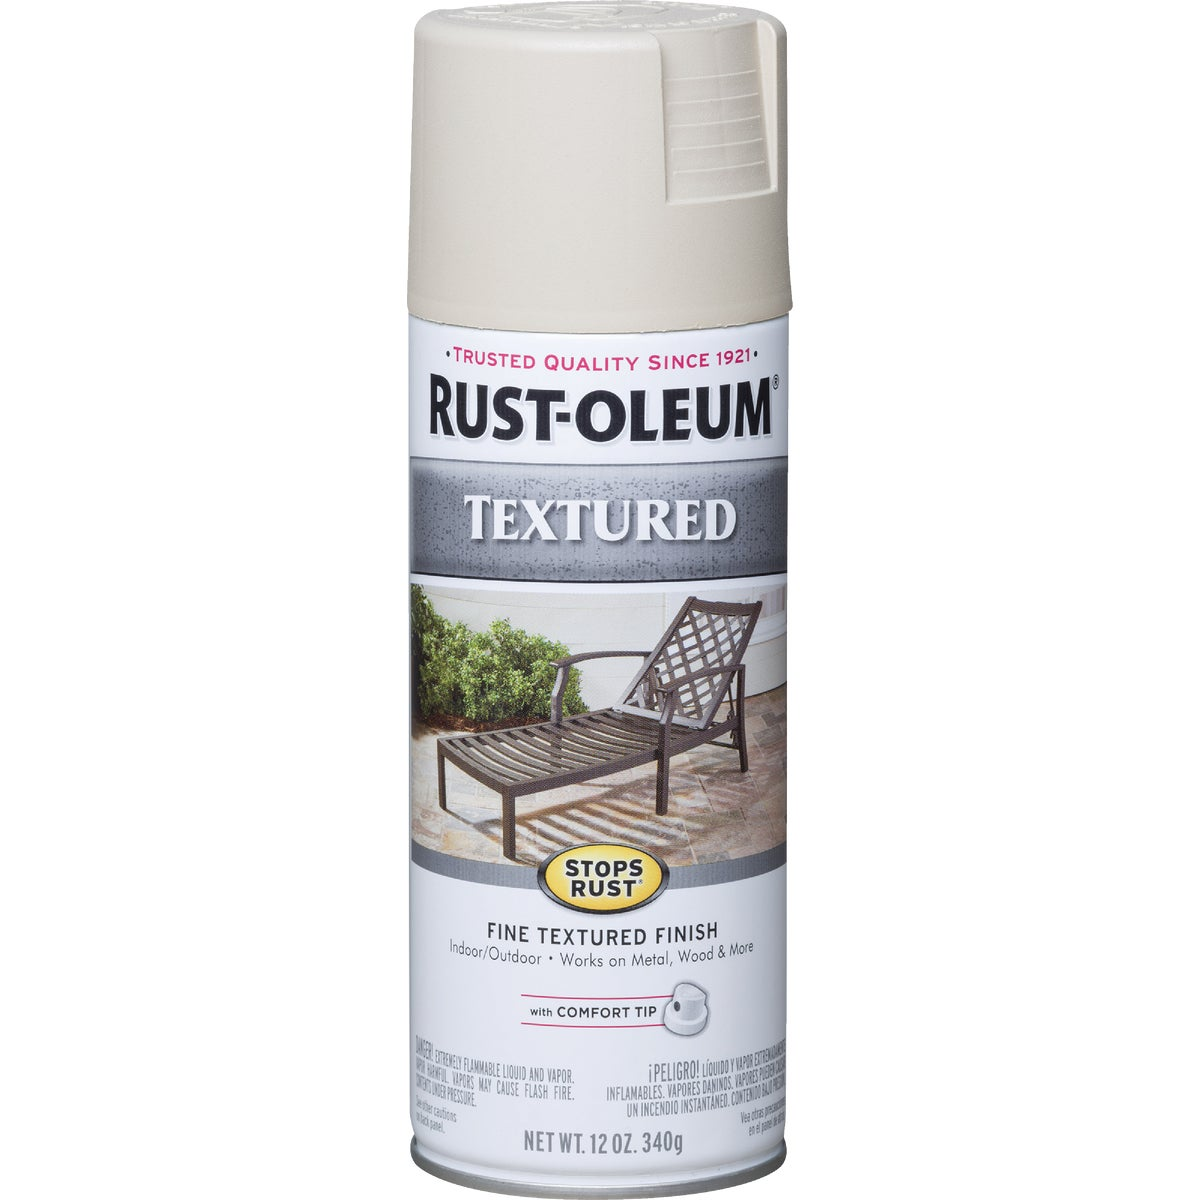 WHT TEXTURED SPRAY PAINT - 7225-830 by Rustoleum